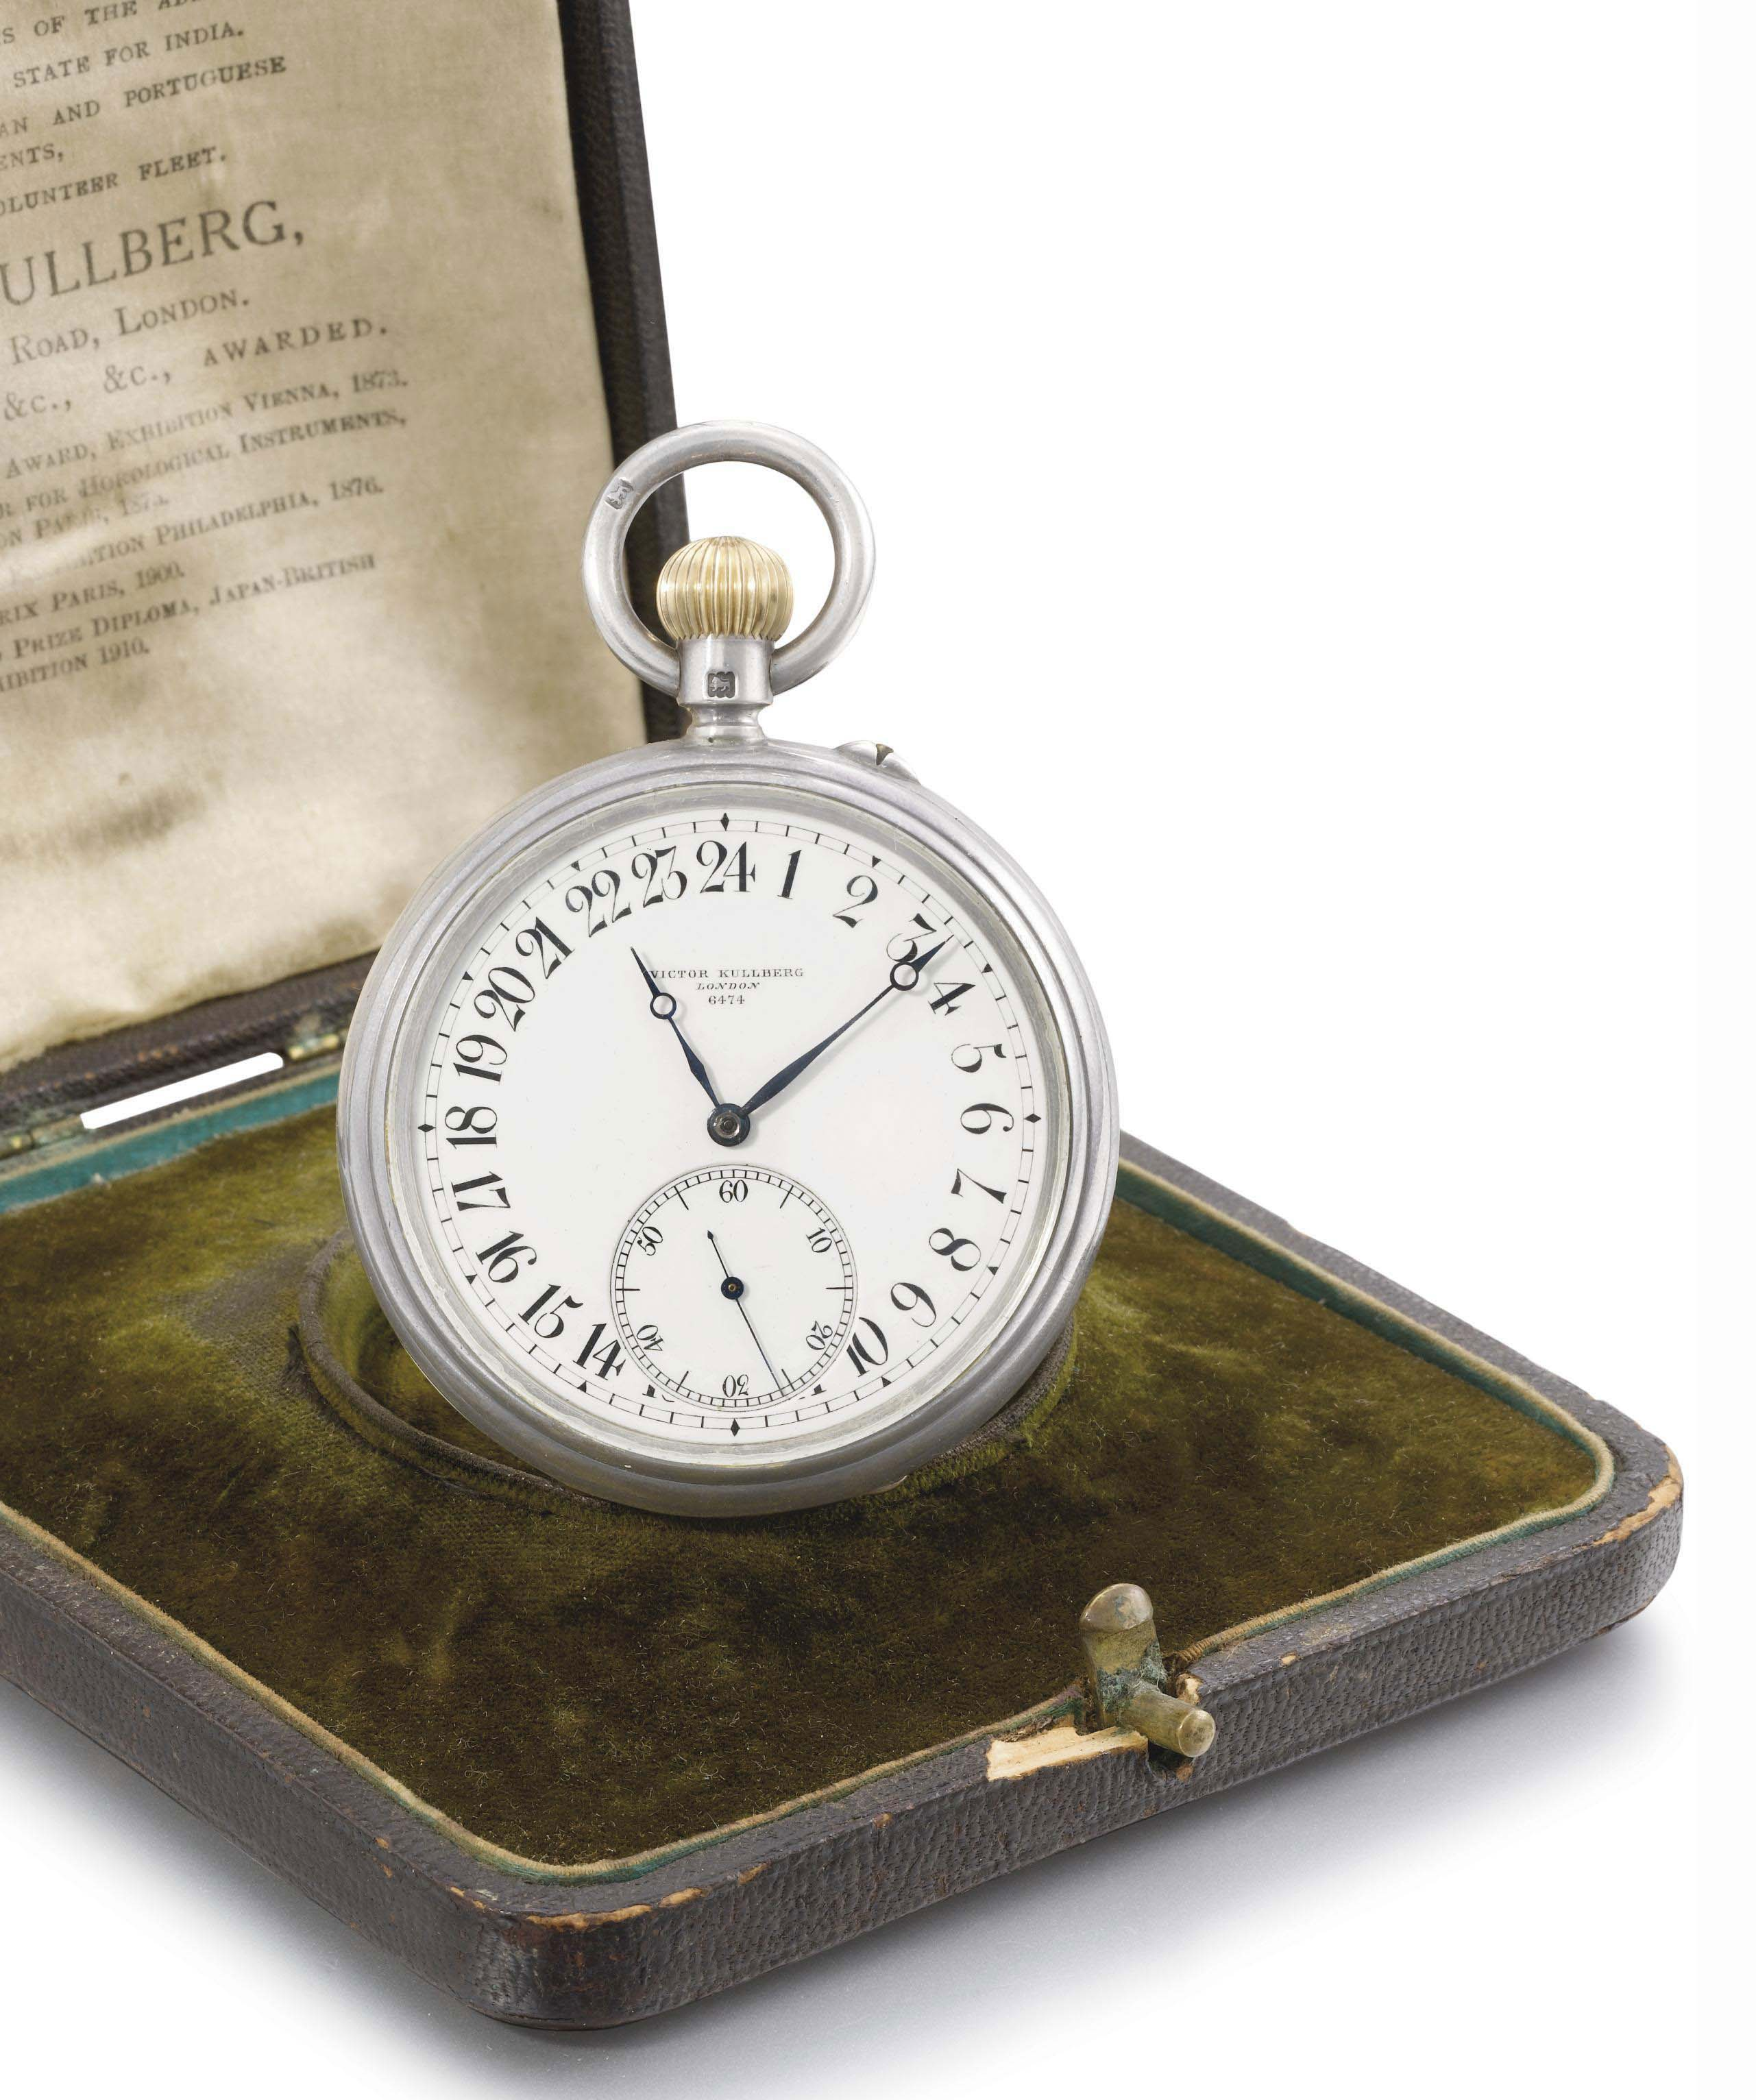 Kullberg. An unusual silver openface keyless lever watch with 52 1/2 minute karrusel, 24 hour dial and box